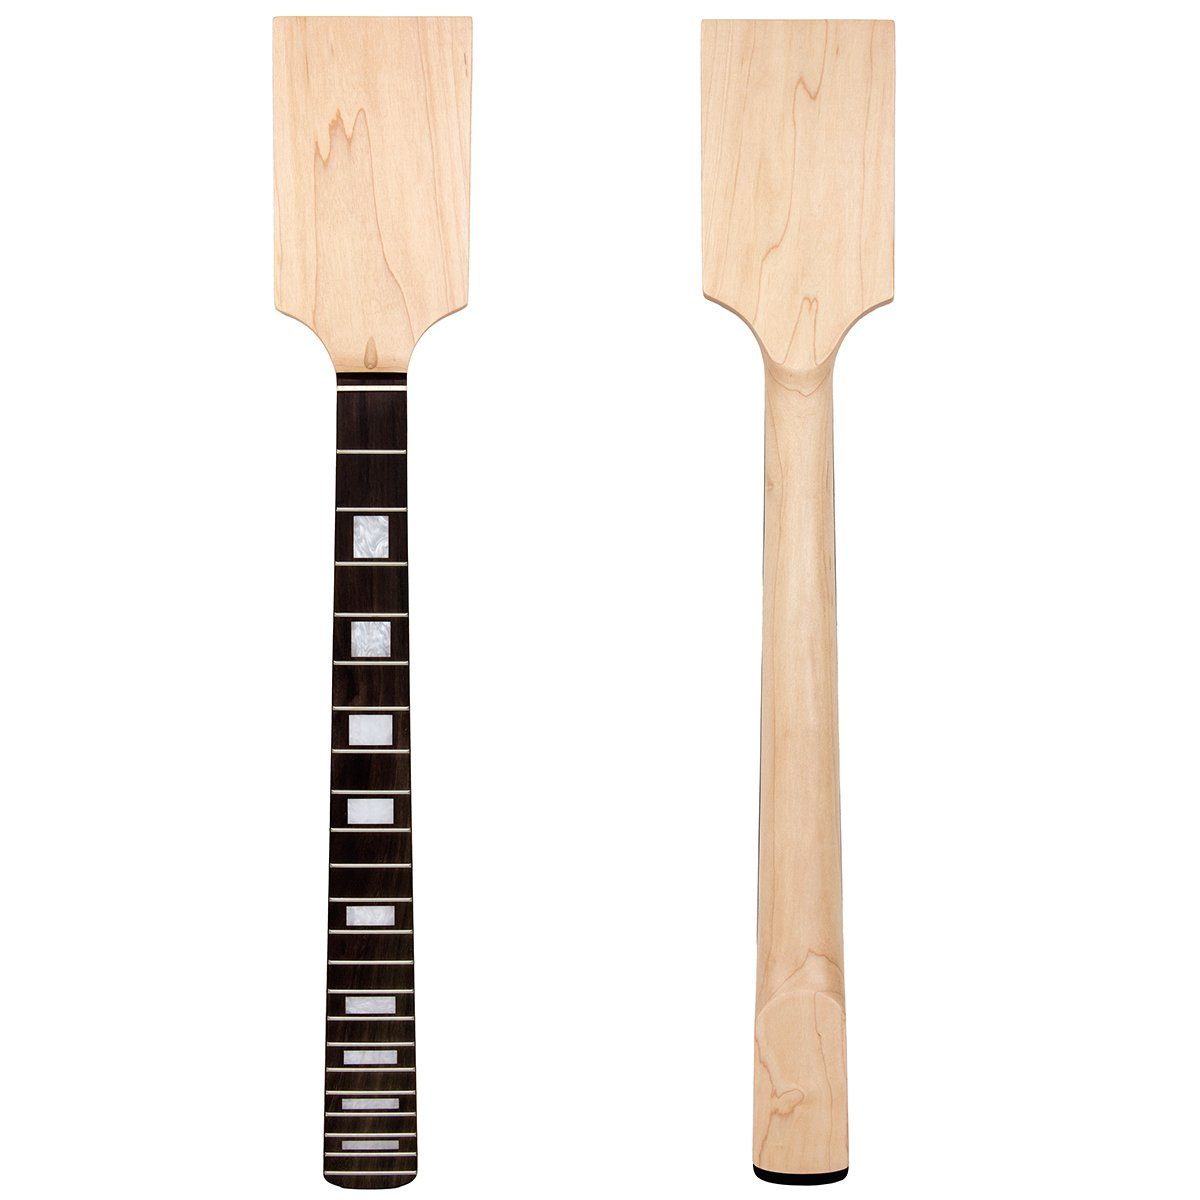 Kmise Electric Guitar Neck Paddle Headstock Unfinished DIY Parts Replacement Maple 22 Fret MI0464